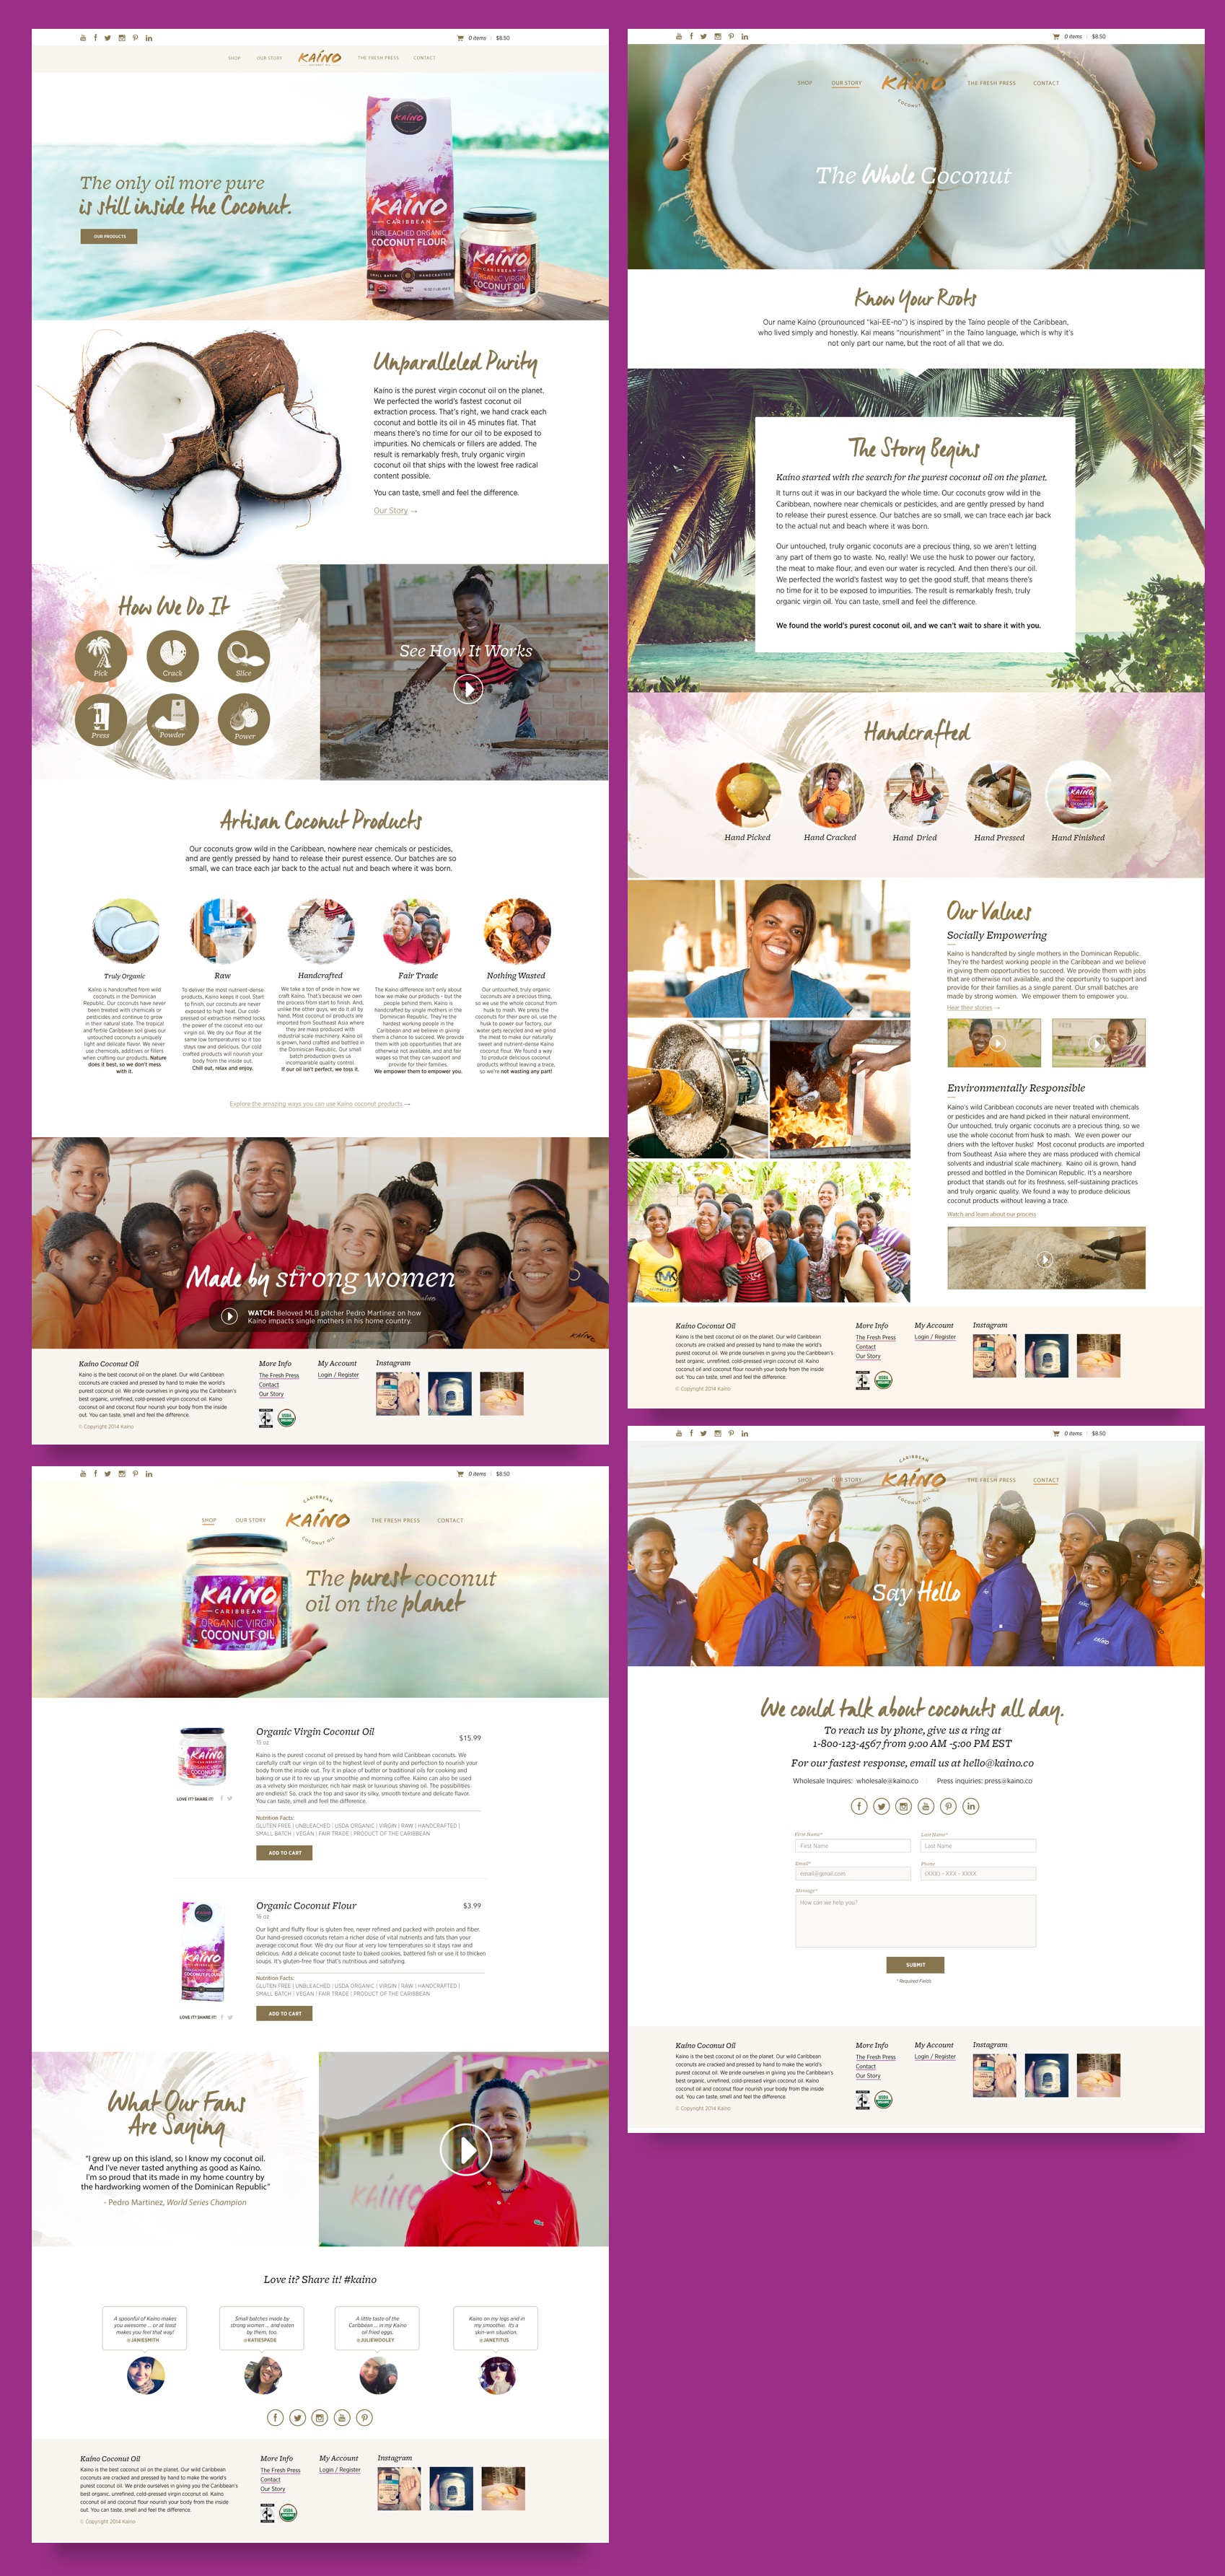 Series of designs of the Kanio website.